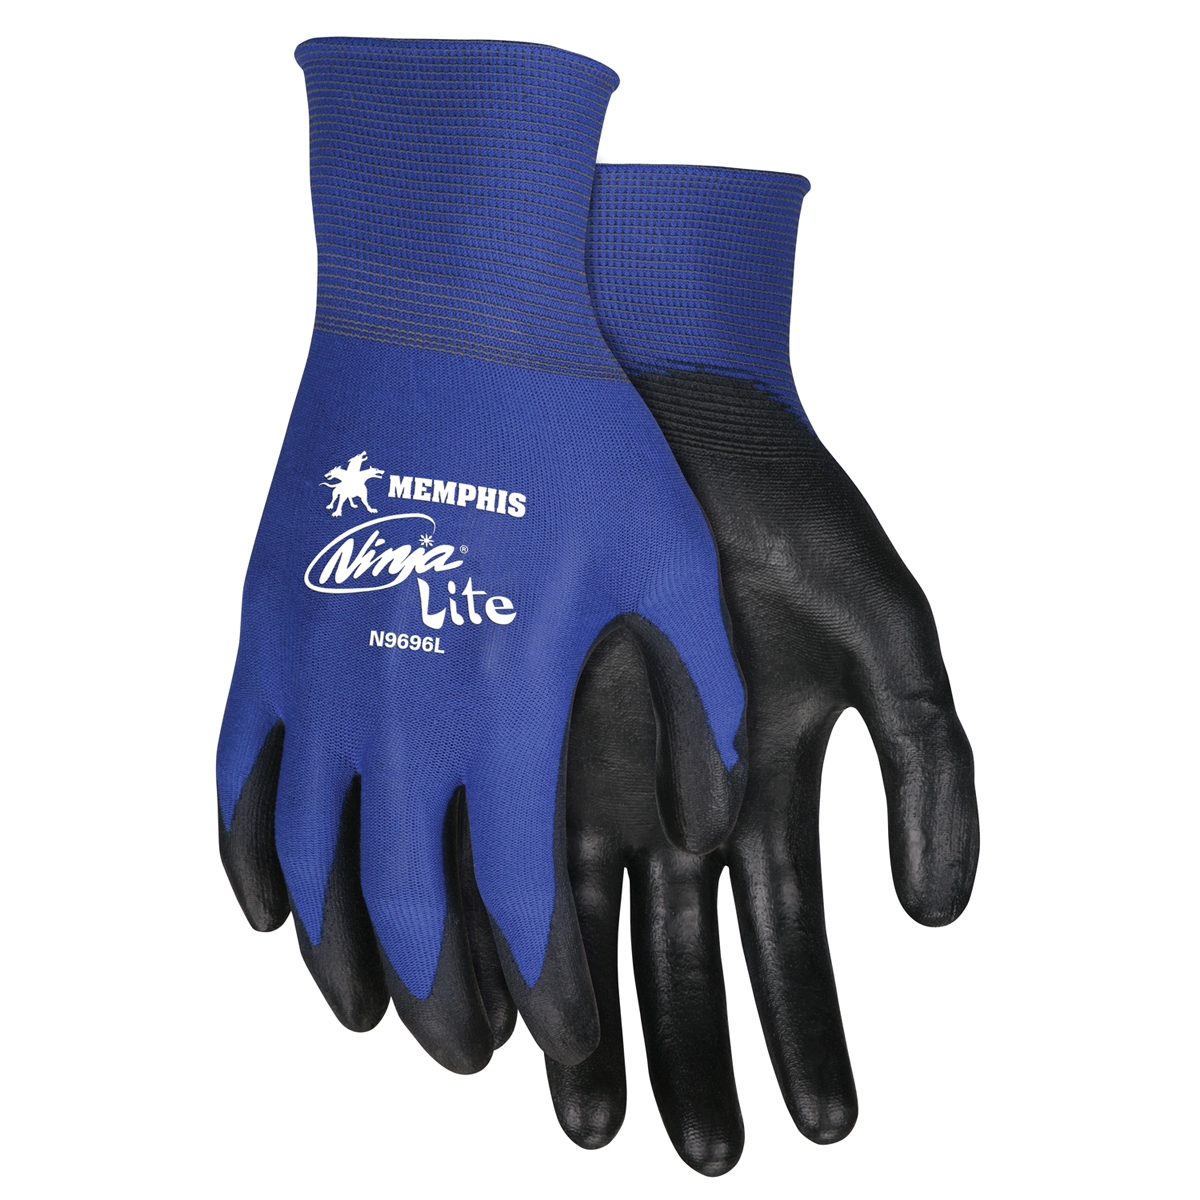 N9696 : MCR Safety Ninja Lite Gloves